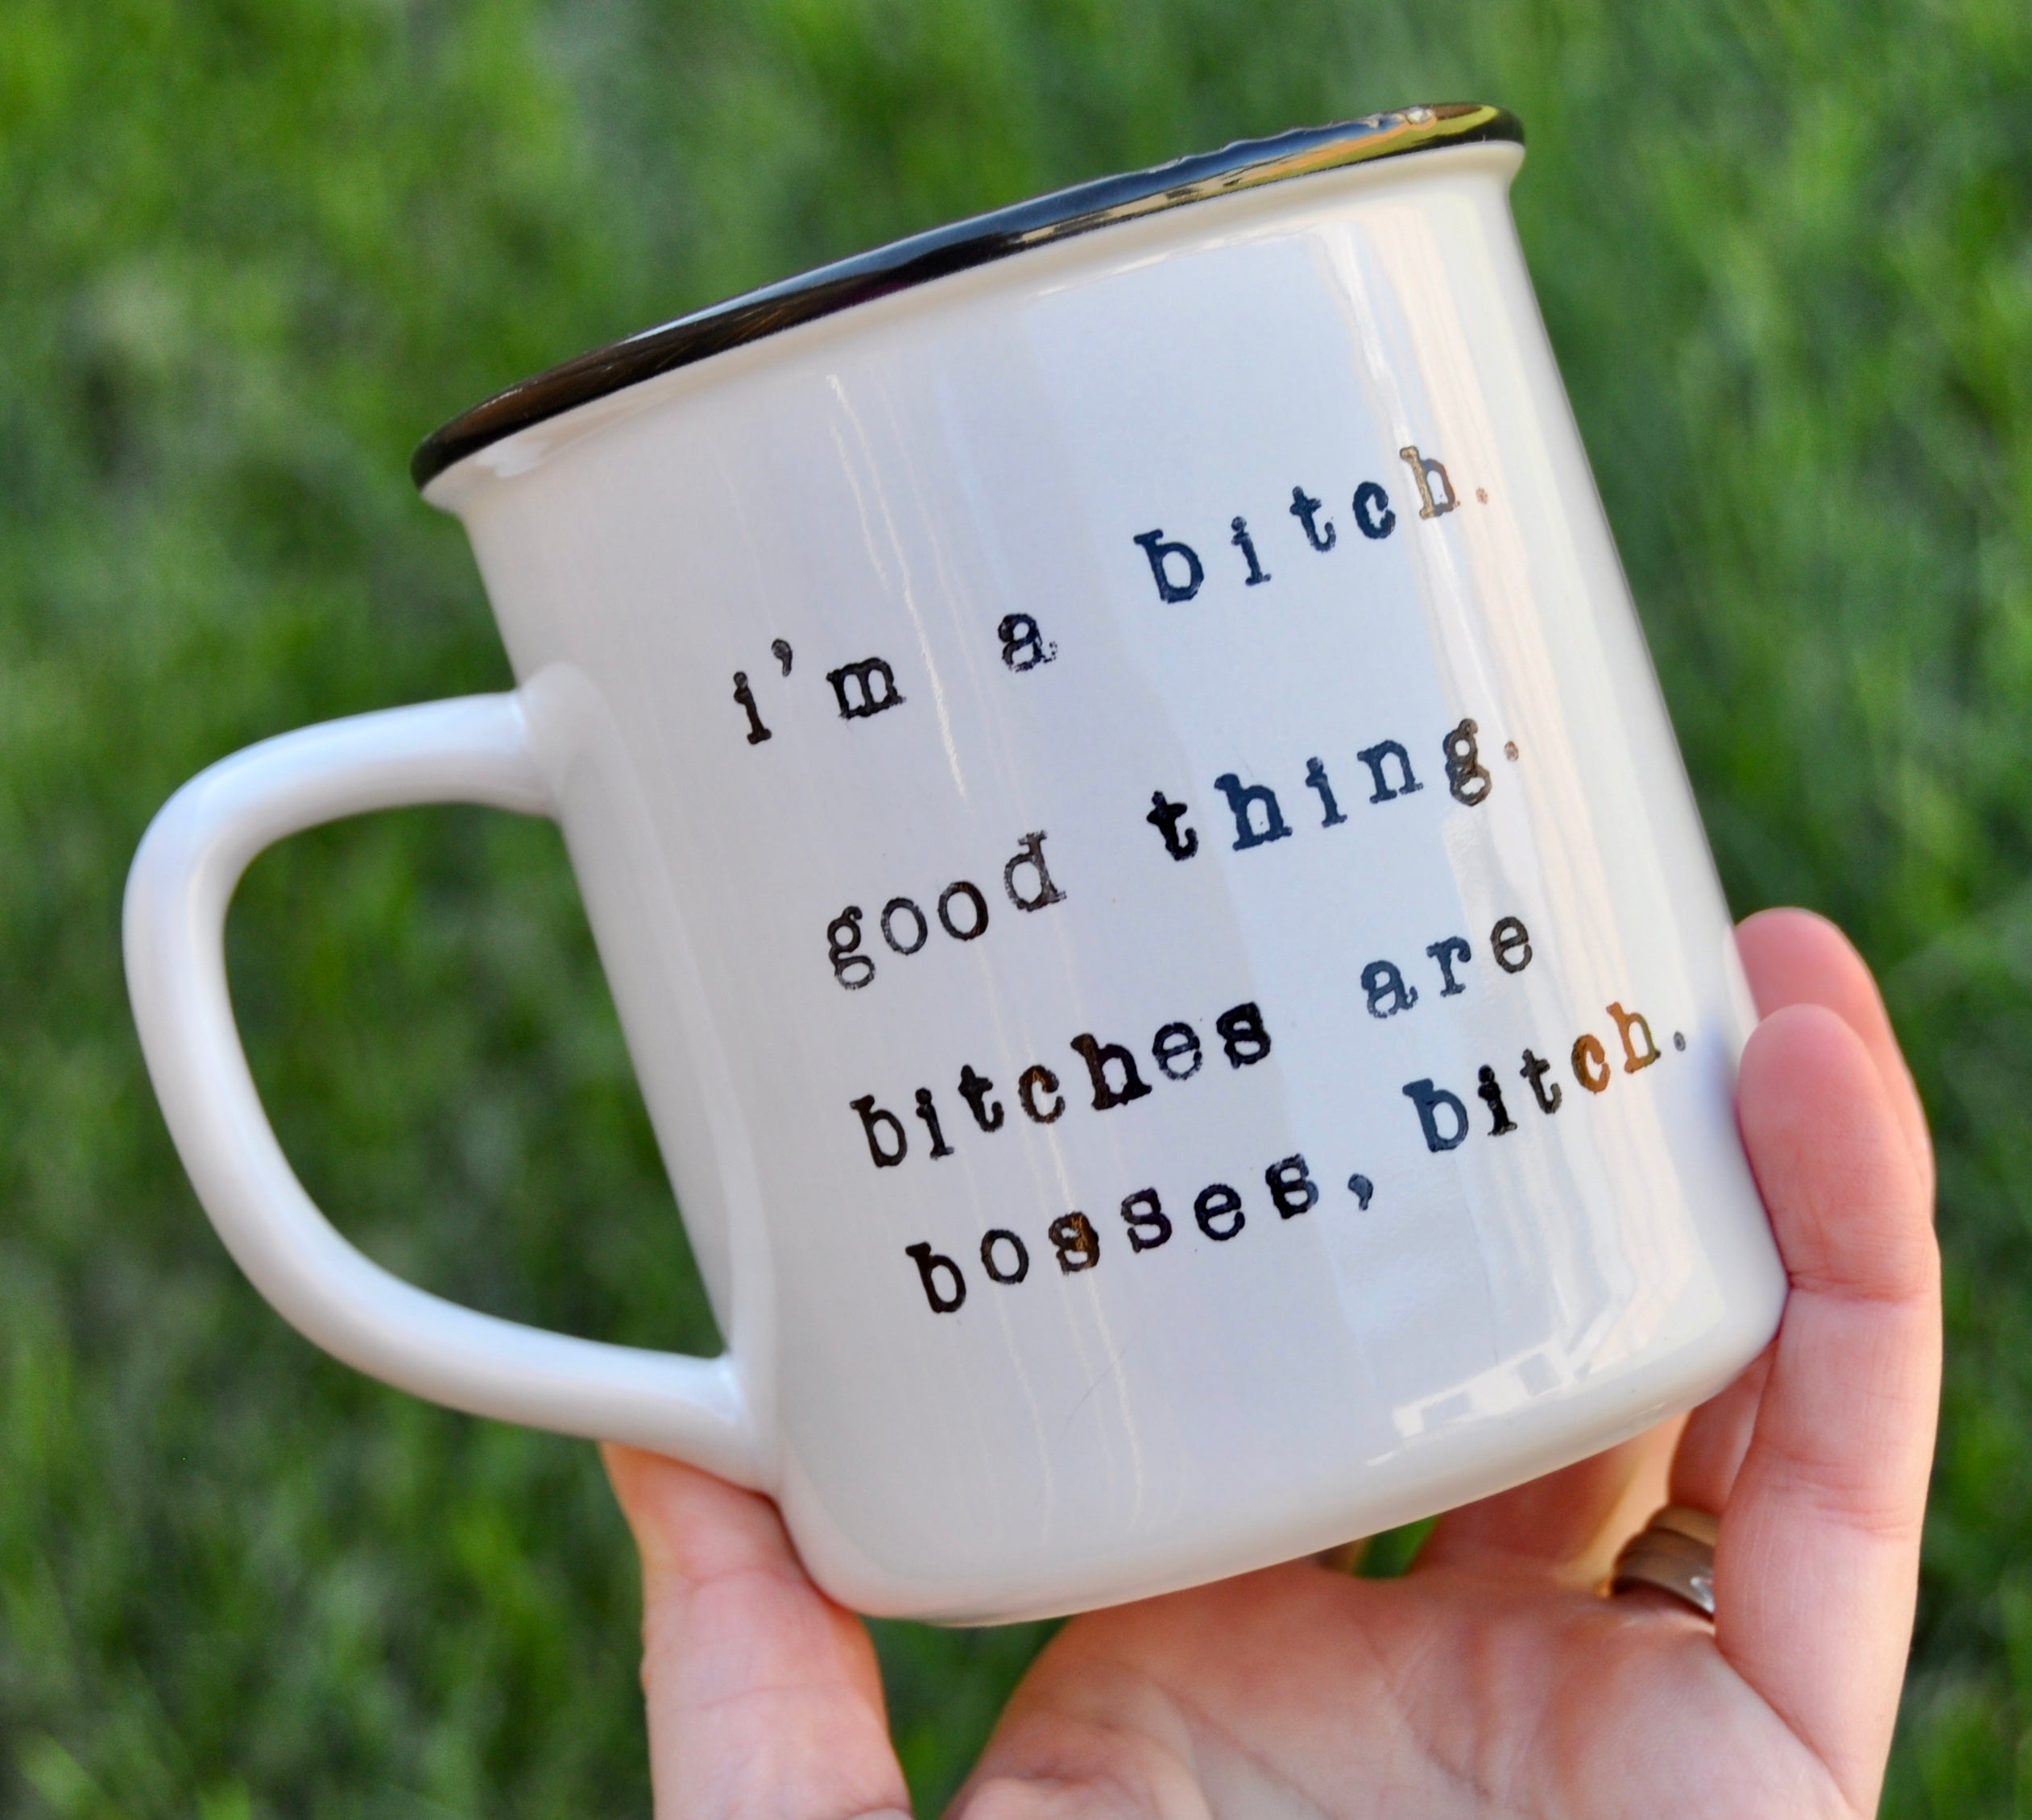 Boss gift bitch mug